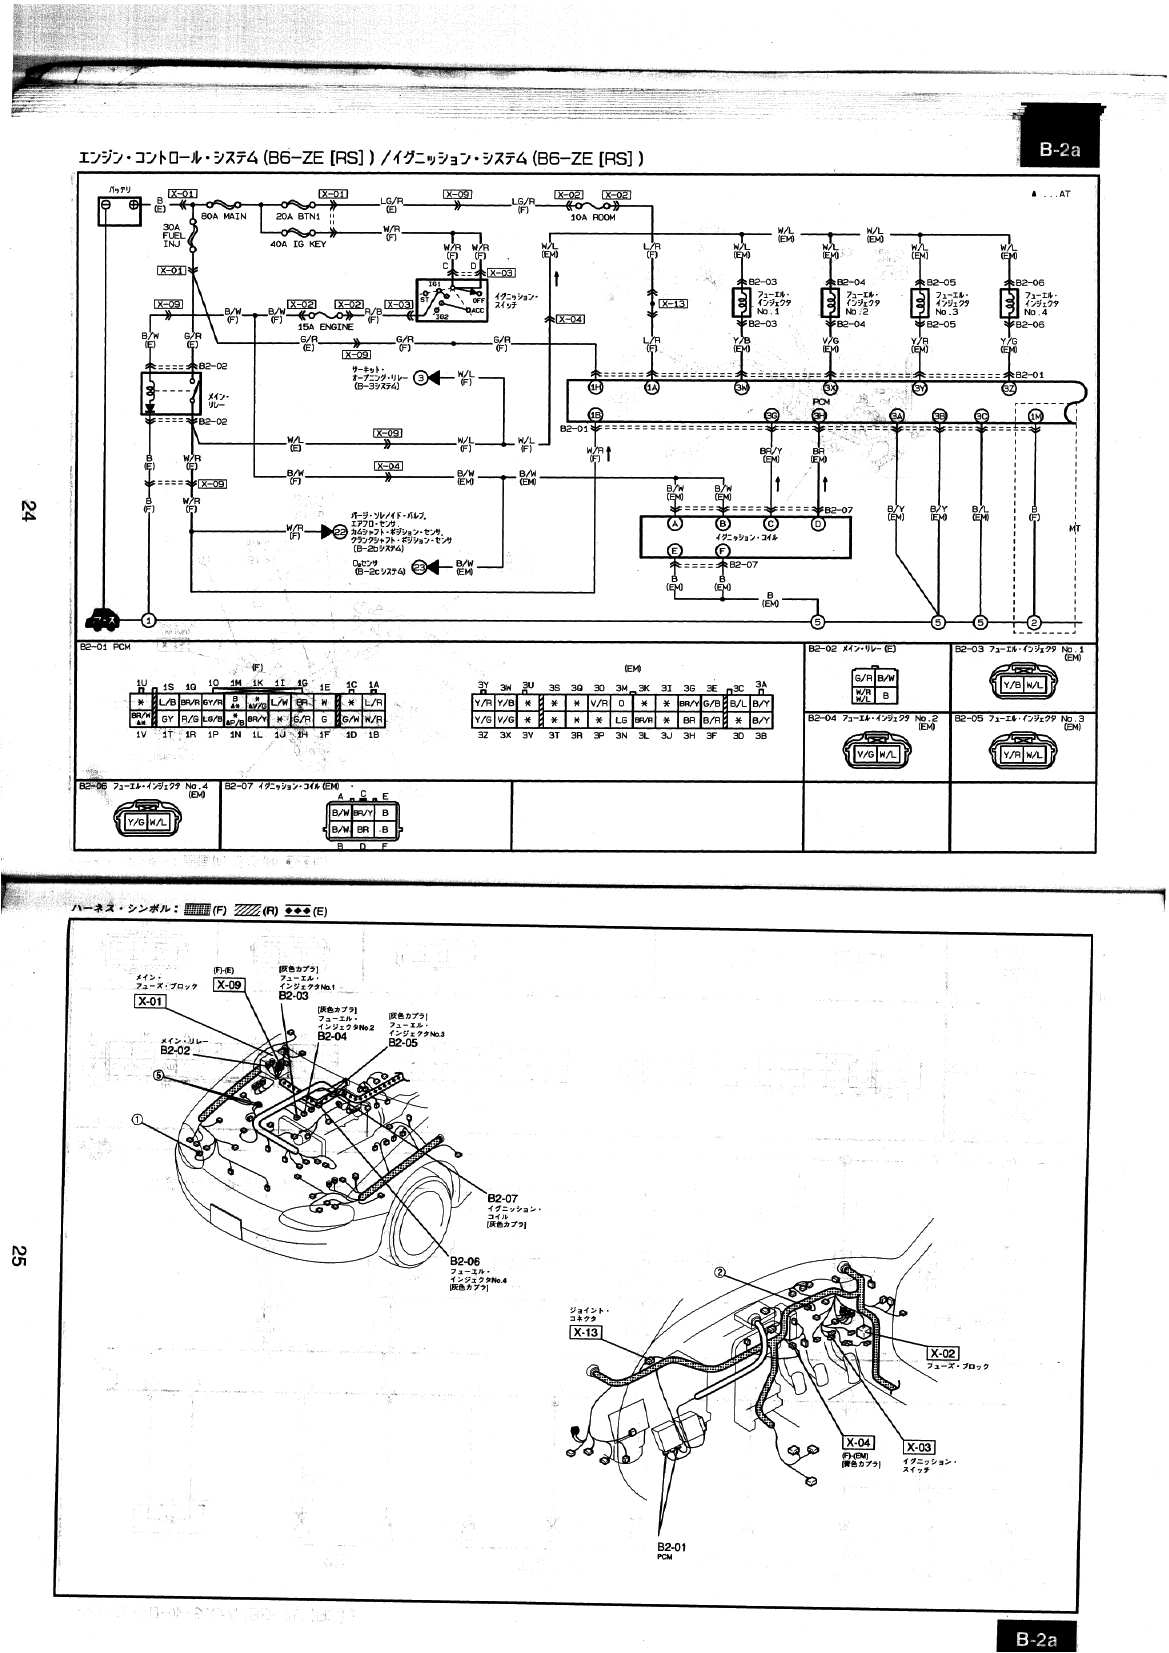 japan wiring diagram japan spec 1999nb6 wiring diagram - clubroadster.net